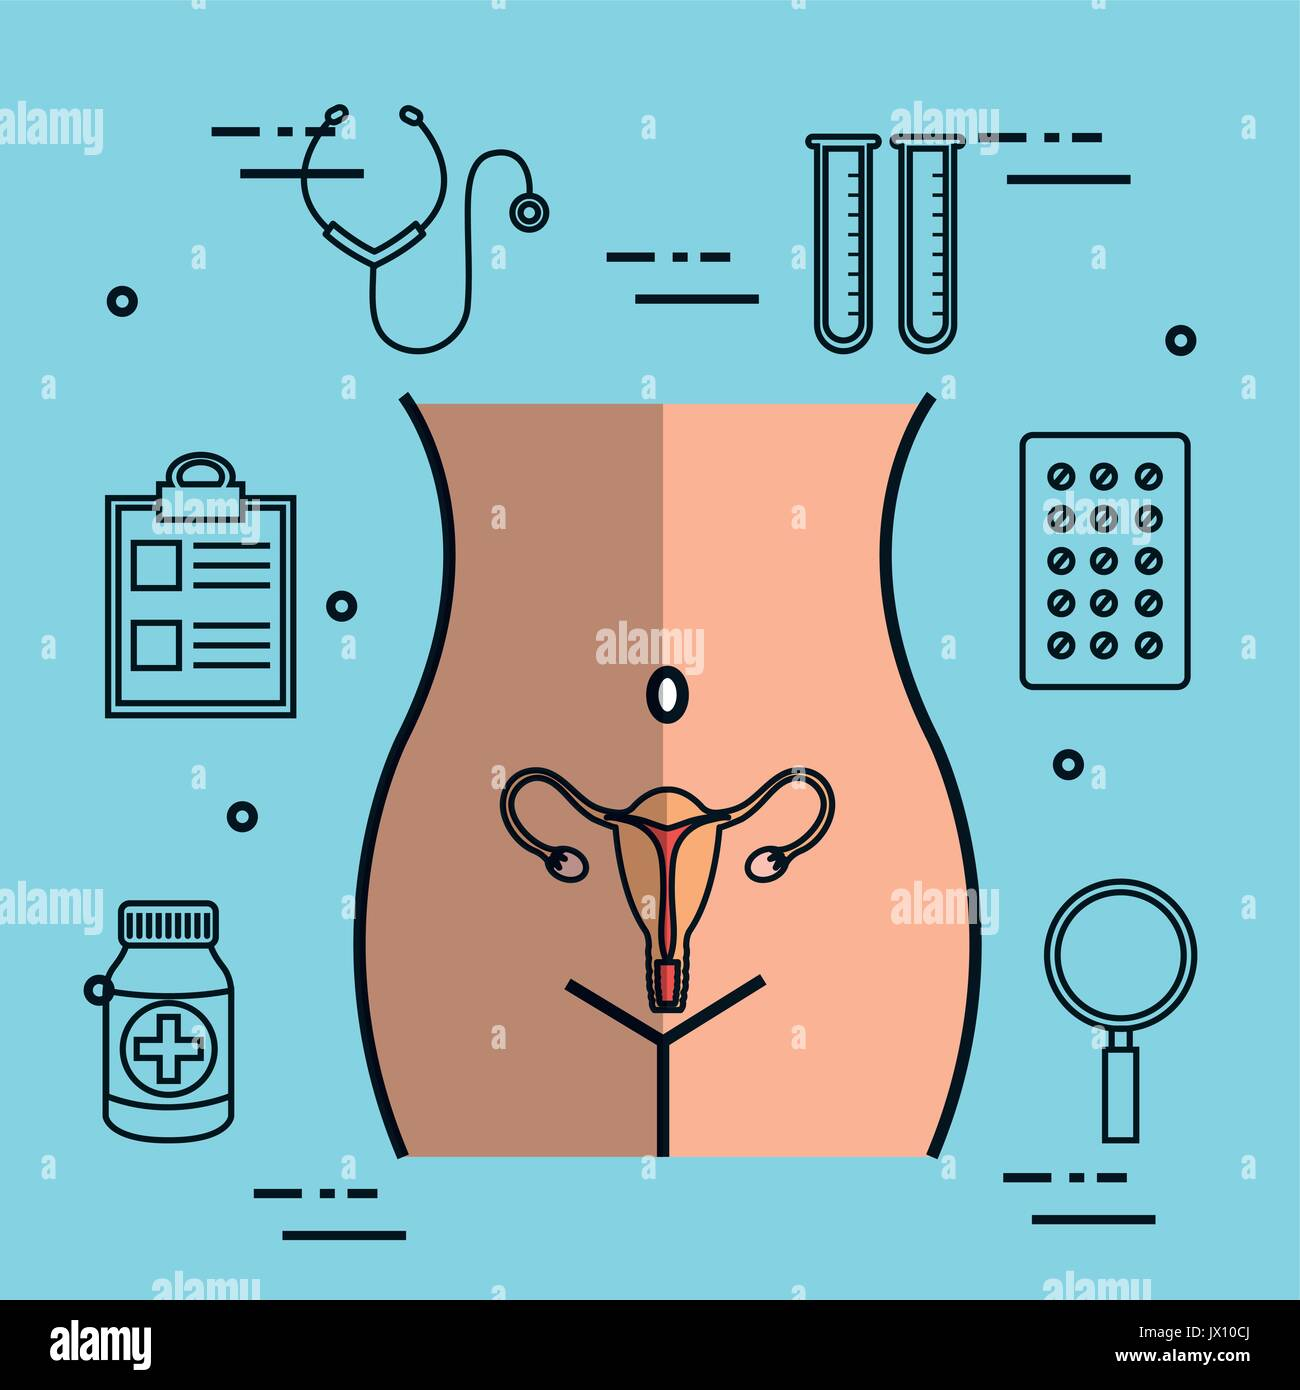 Illustration Of Anatomy Of Cervix Stock Photos & Illustration Of ...